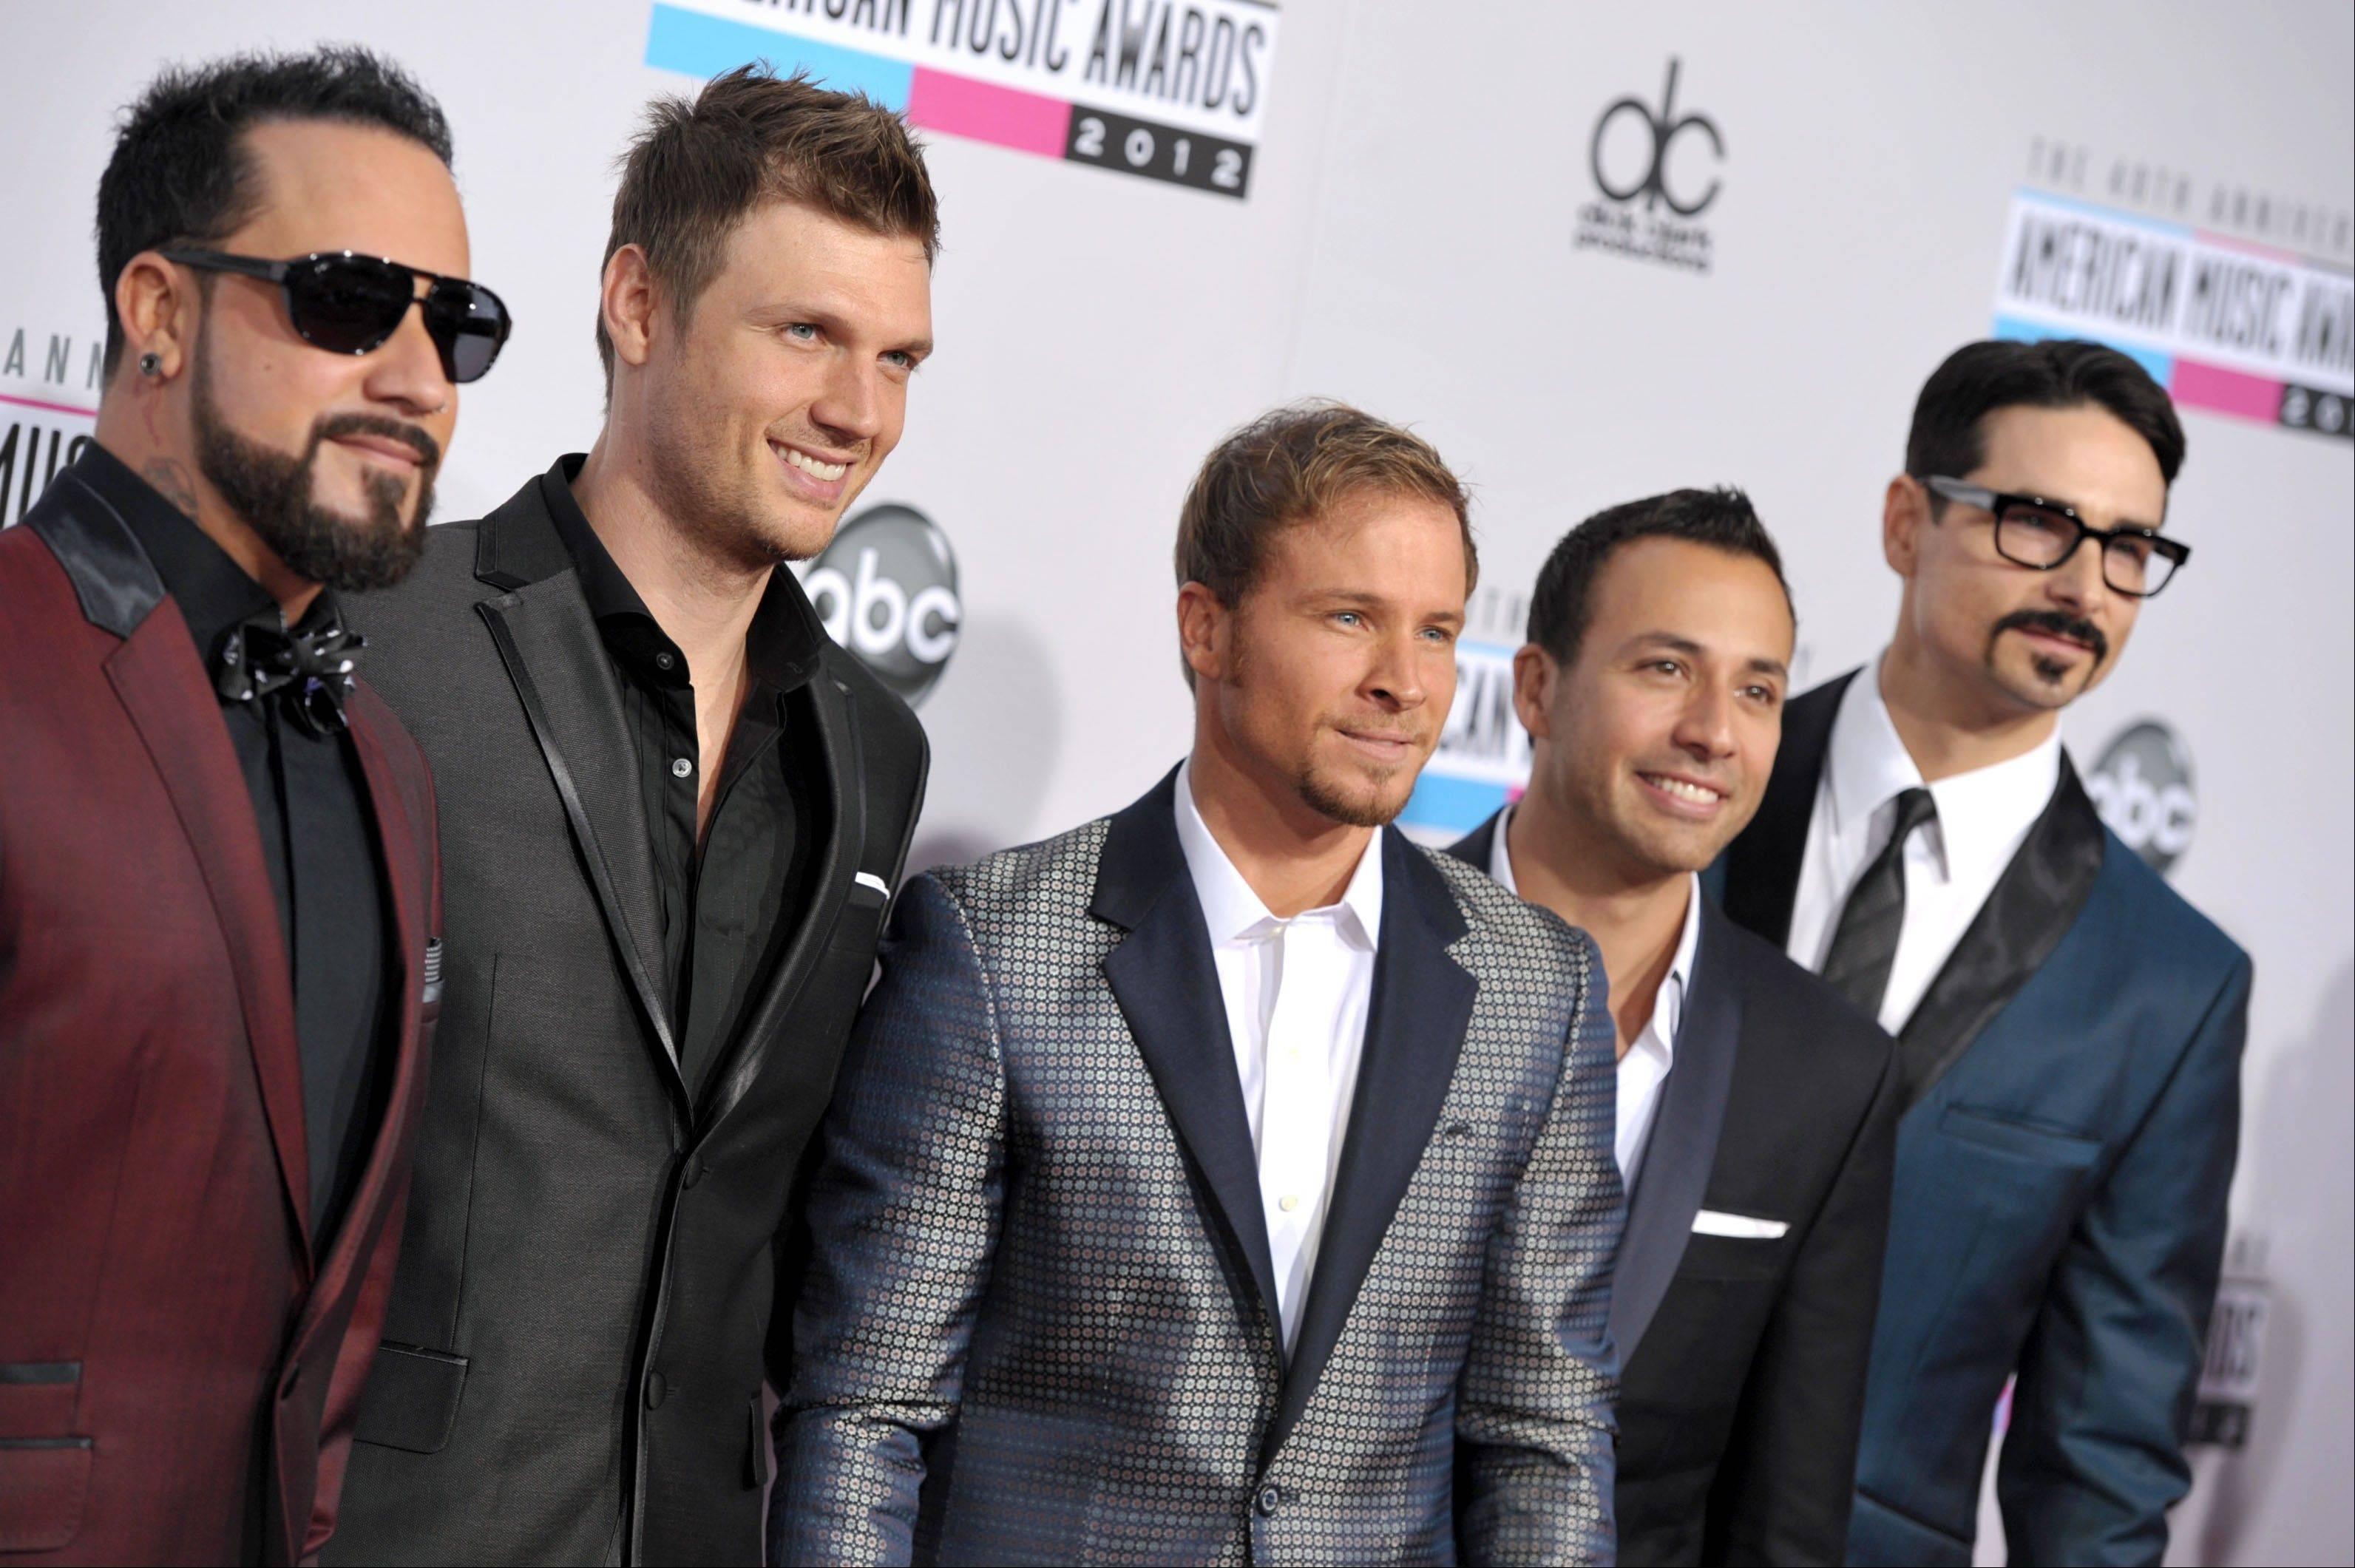 The Backstreet Boys, from left, A.J. McLean, Nick Carter, Brian Littrell, Howie Dorough, and Kevin Richardson arrive at the 40th Anniversary American Music Awards.